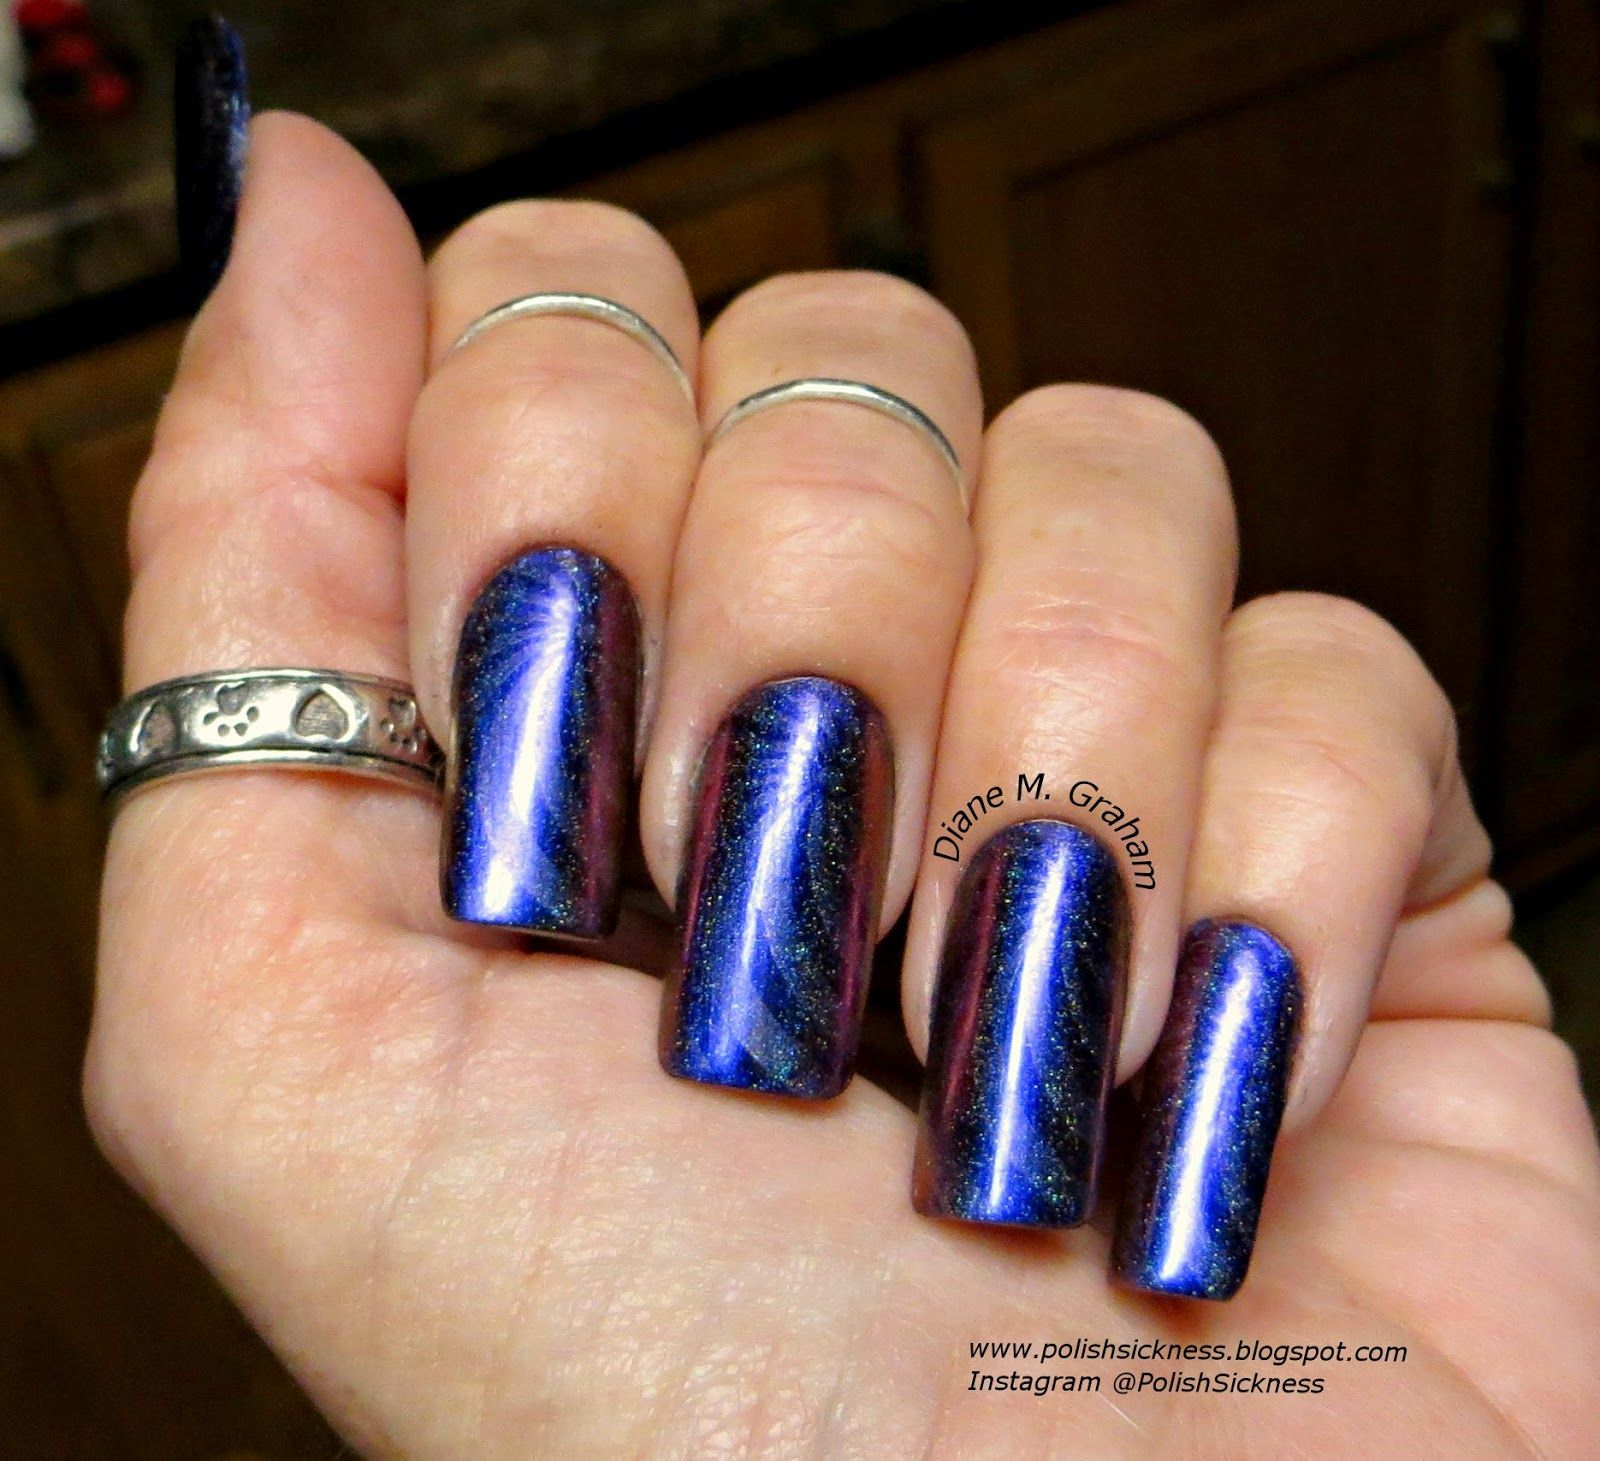 ILNP Cygnus Loop Holo, OPI DS Sapphire, Ali Express 12-51 holo stamp ...